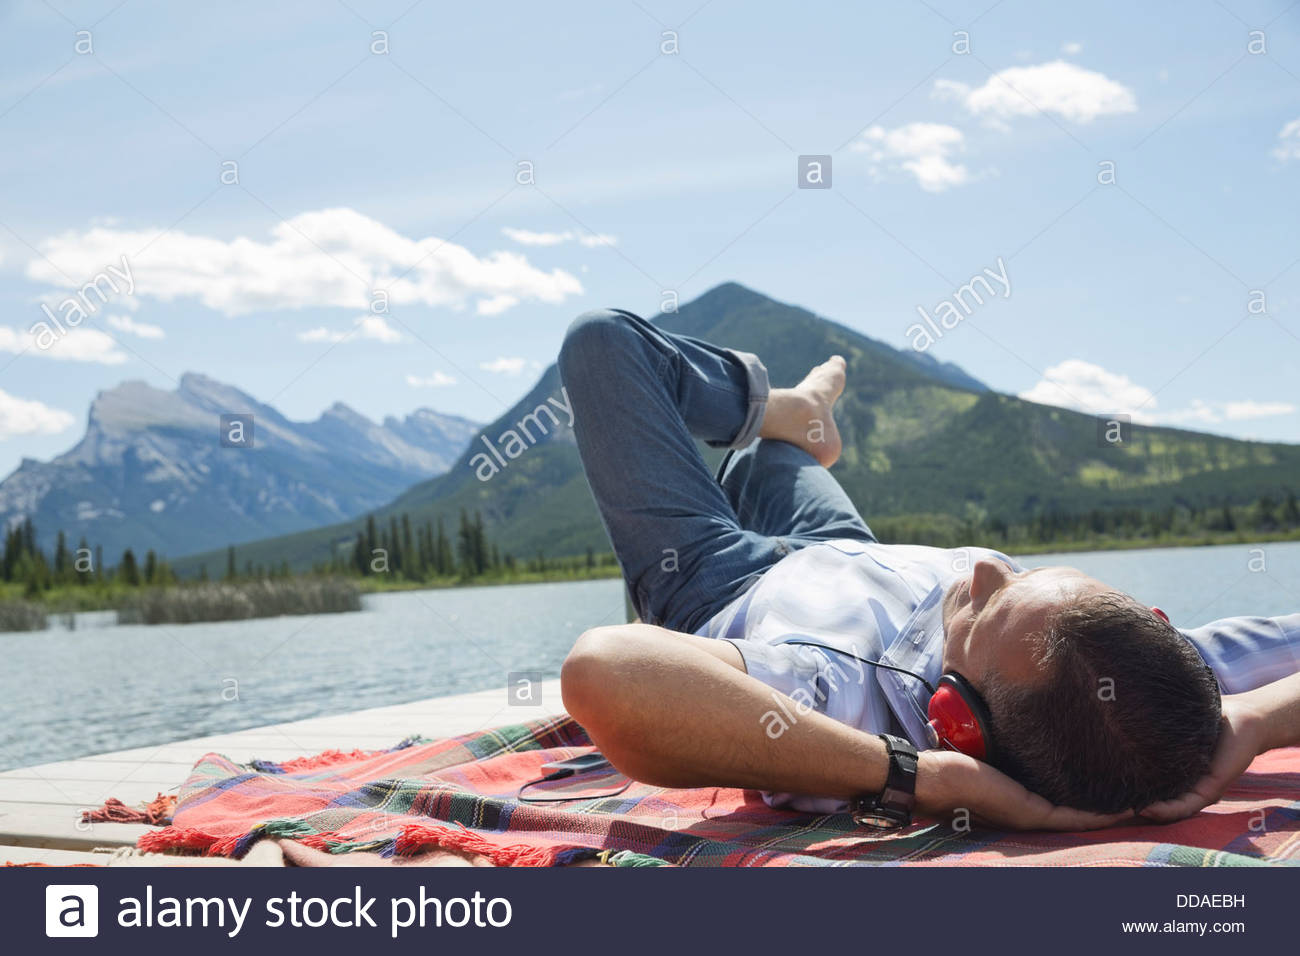 Man relaxing on dock - Stock Image